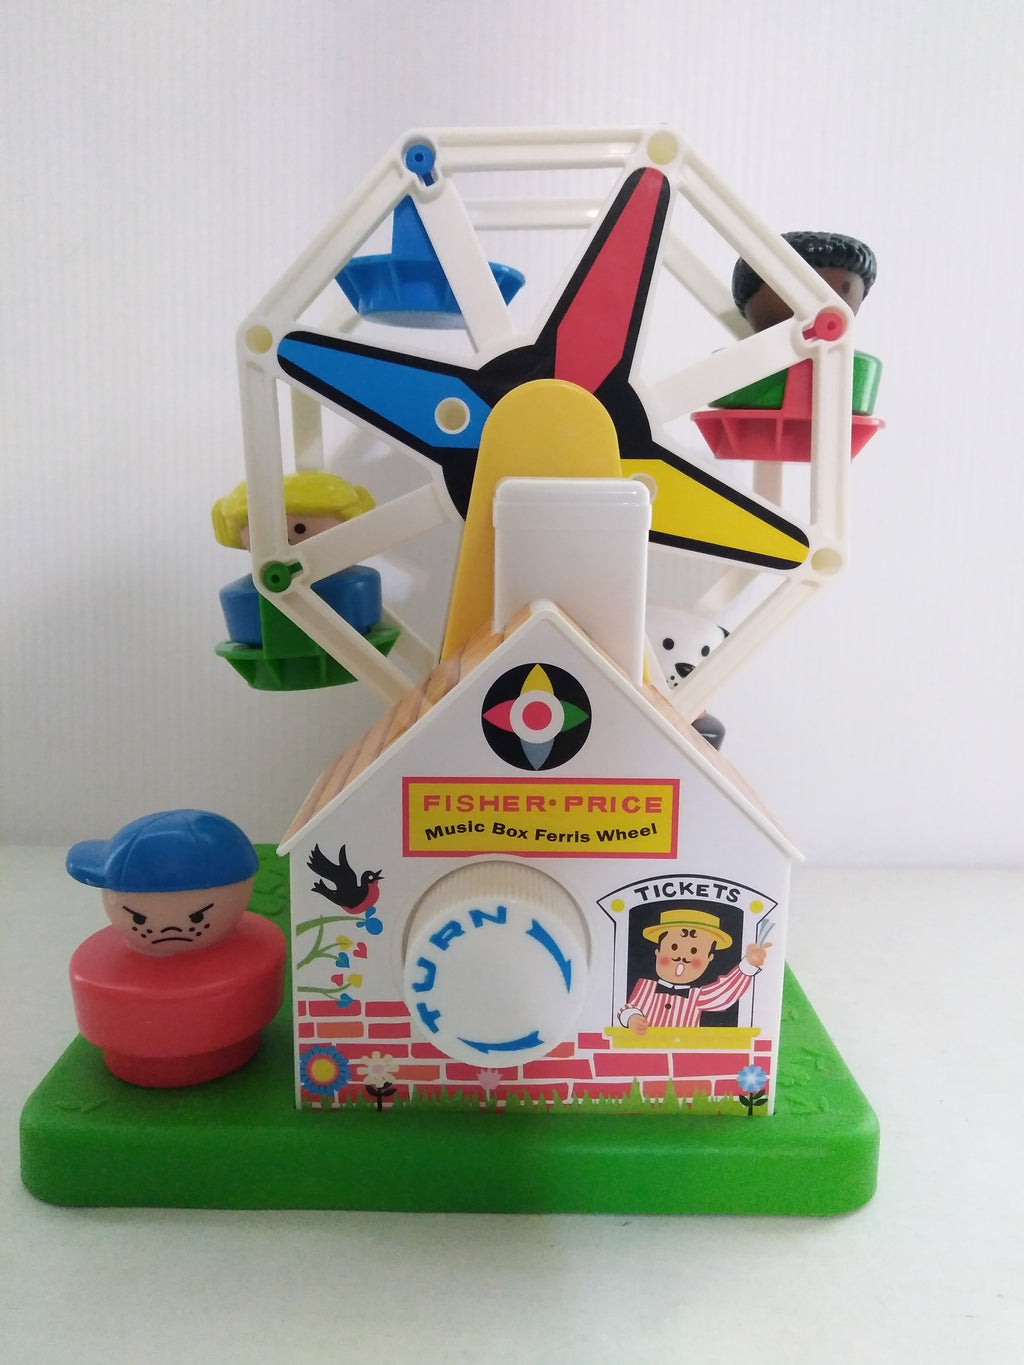 2015 Fisher Price Music Box Ferris Wheel - We Got Character